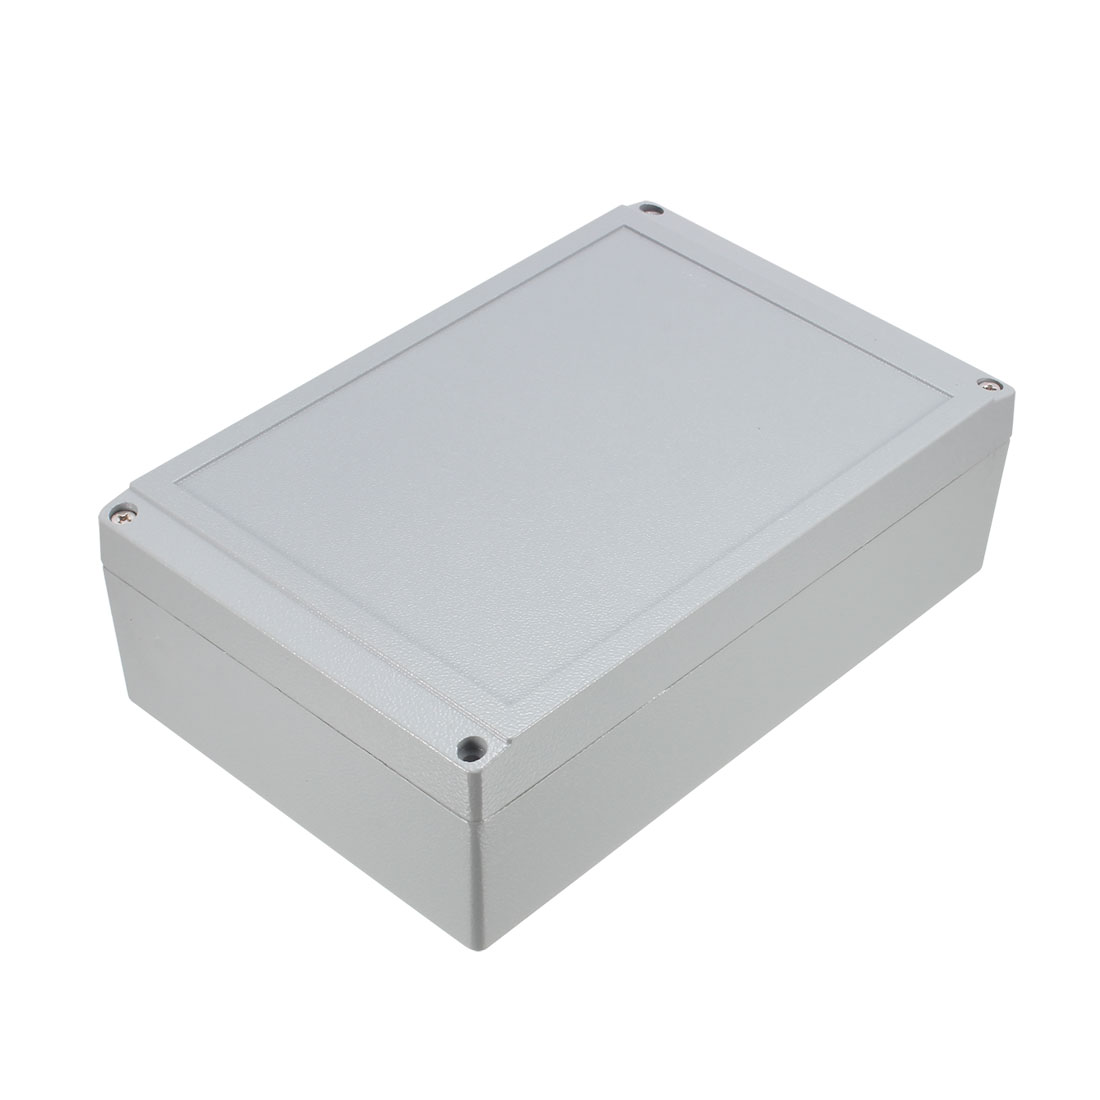 "9""x5.9""x3""(228mmx150mmx75mm) Aluminum Waterproof Junction Box Universal Electric Project Enclosure"